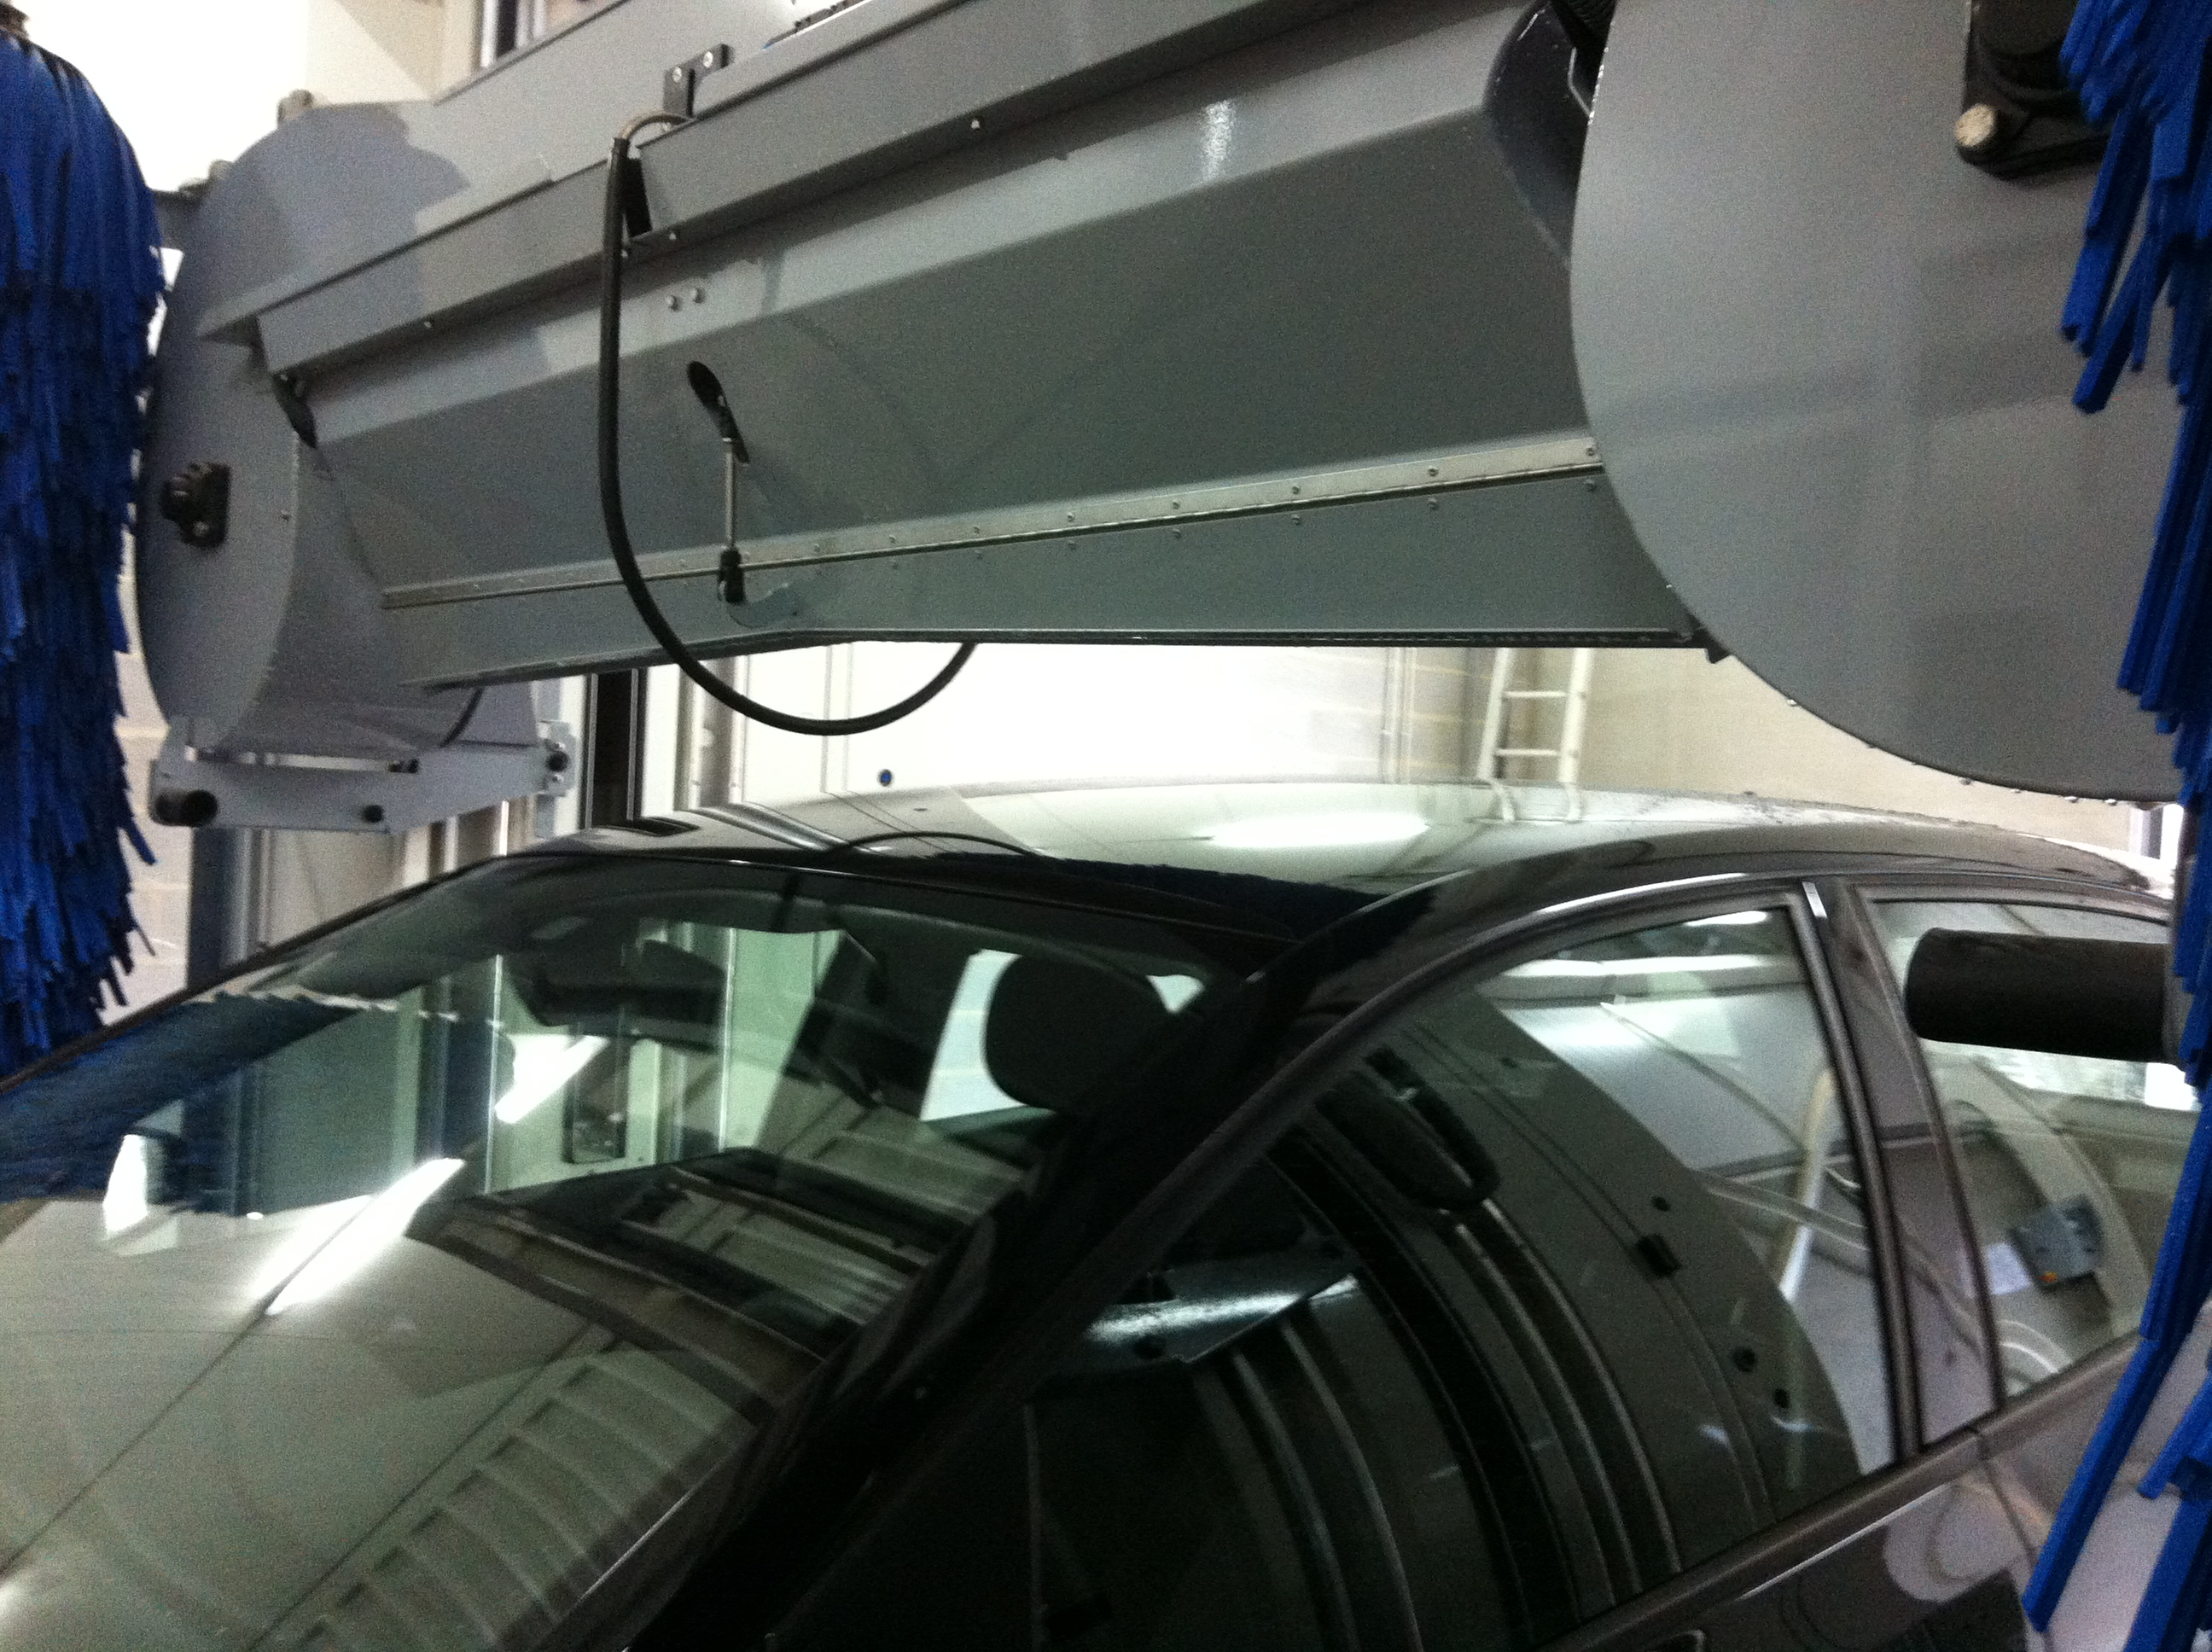 Eco wash systems istobal m22 garage volkswagen delorge for Garage volkswagen paris 15